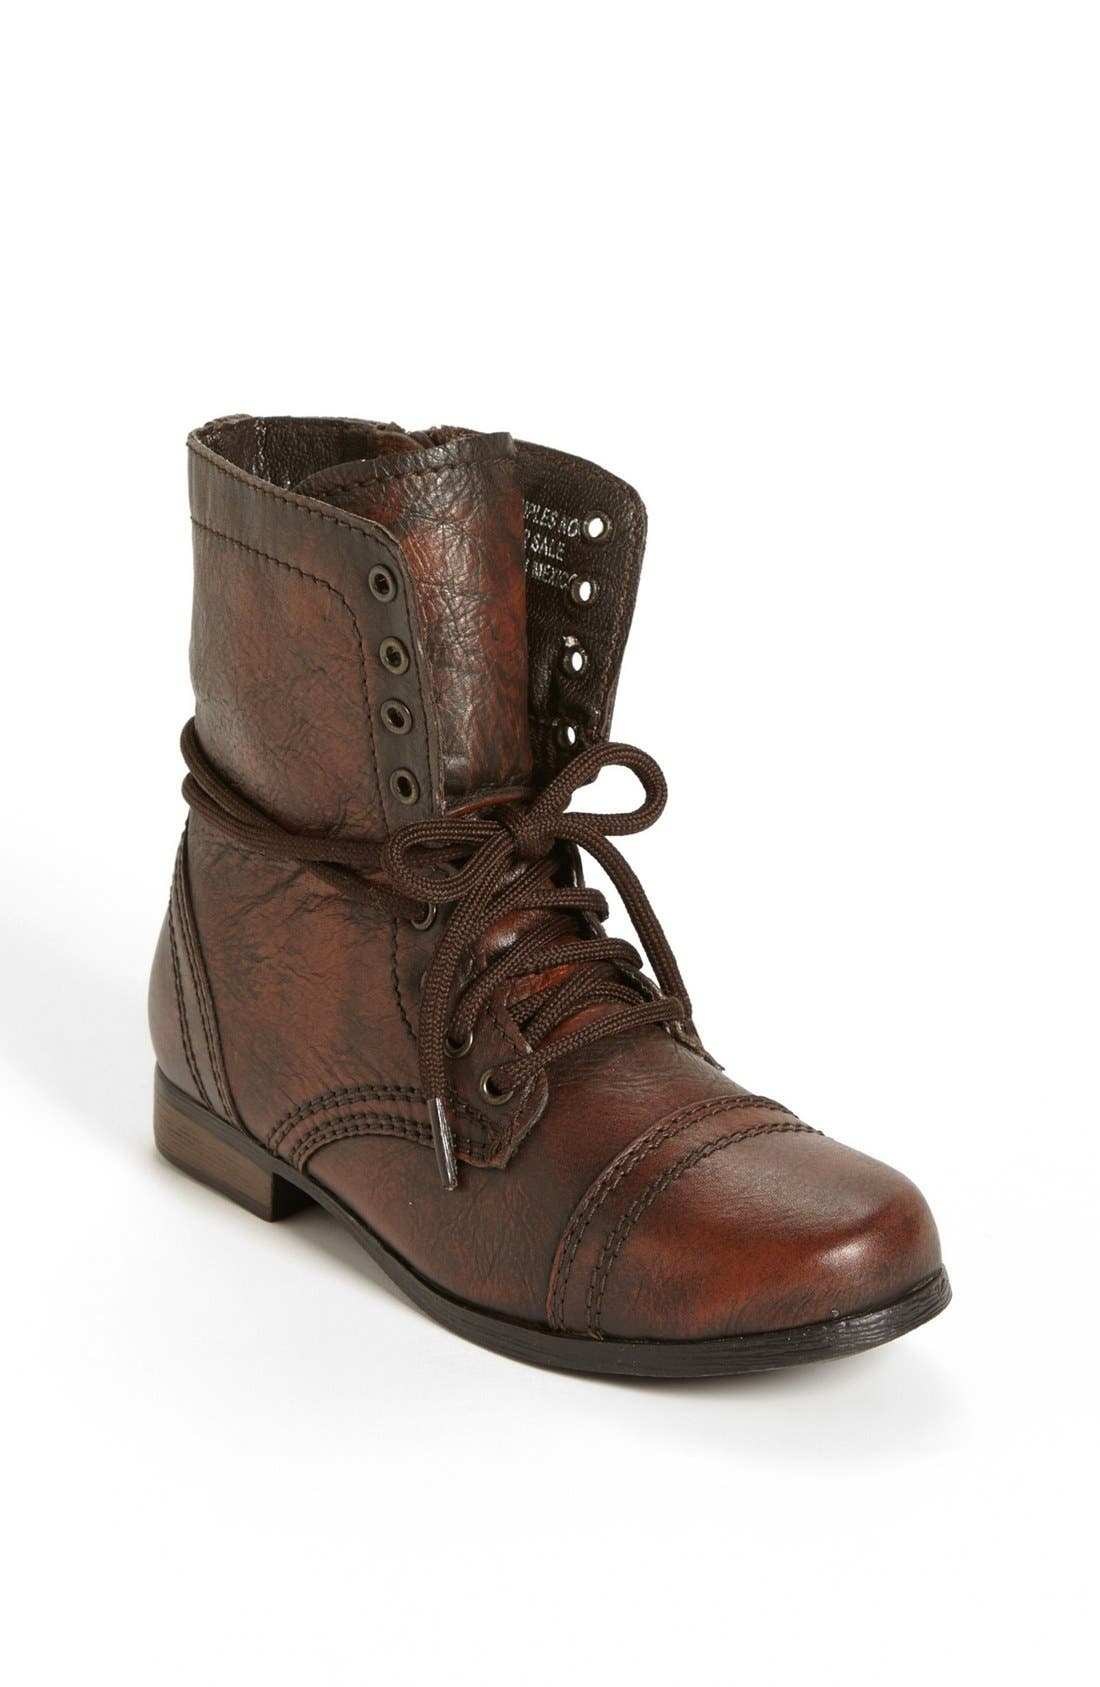 Alternate Image 1 Selected - Steve Madden 'Troopa' Boot (Toddler, Little Kid & Big Kid)